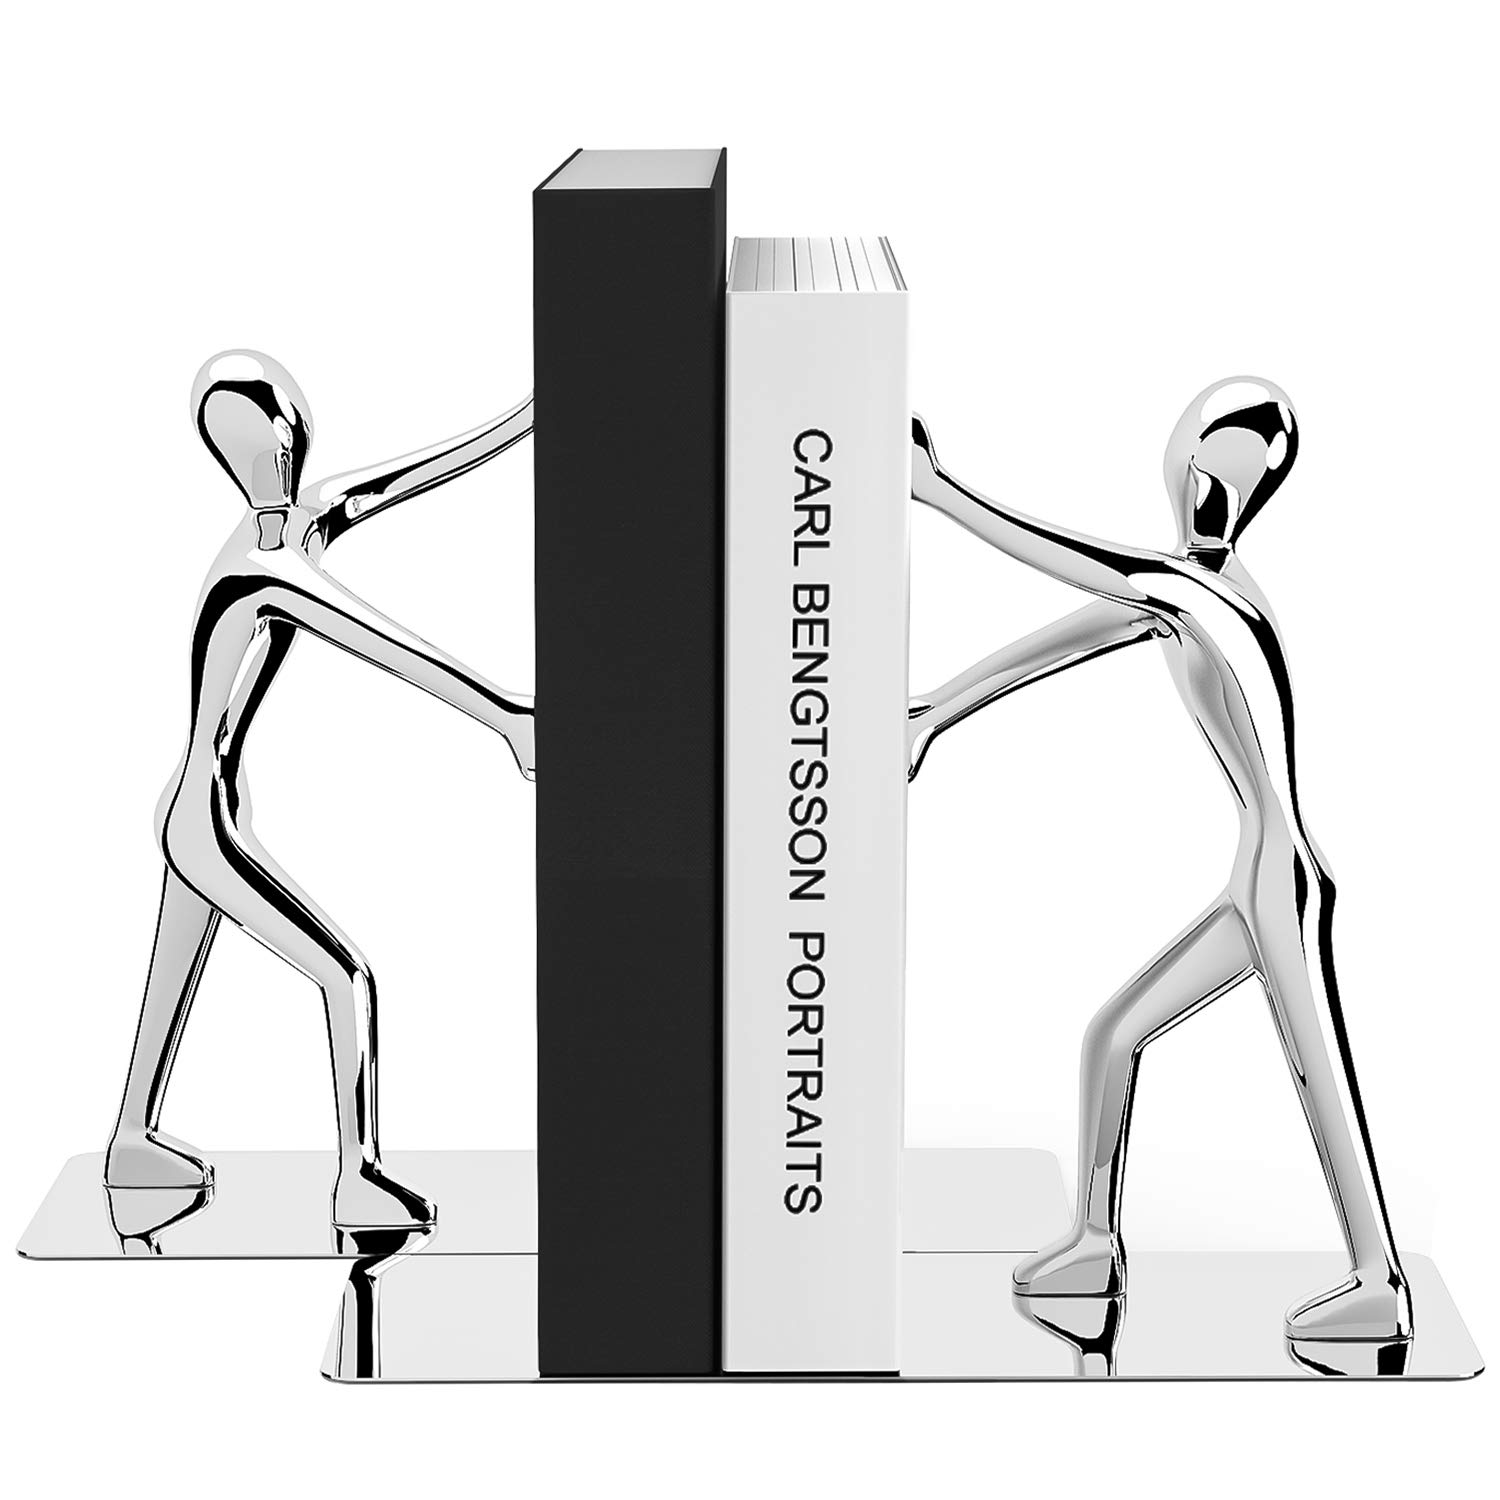 MROCO Heavy Duty Zinc Alloy Man Decorative Bookends, Non-skid, Metal Book Ends for Shelves, Book Support, Book Stopper for Books, Movies, Magazines, Video Games, 7.28 x 6.1 in, Silver, 1 Pair/2 Pieces